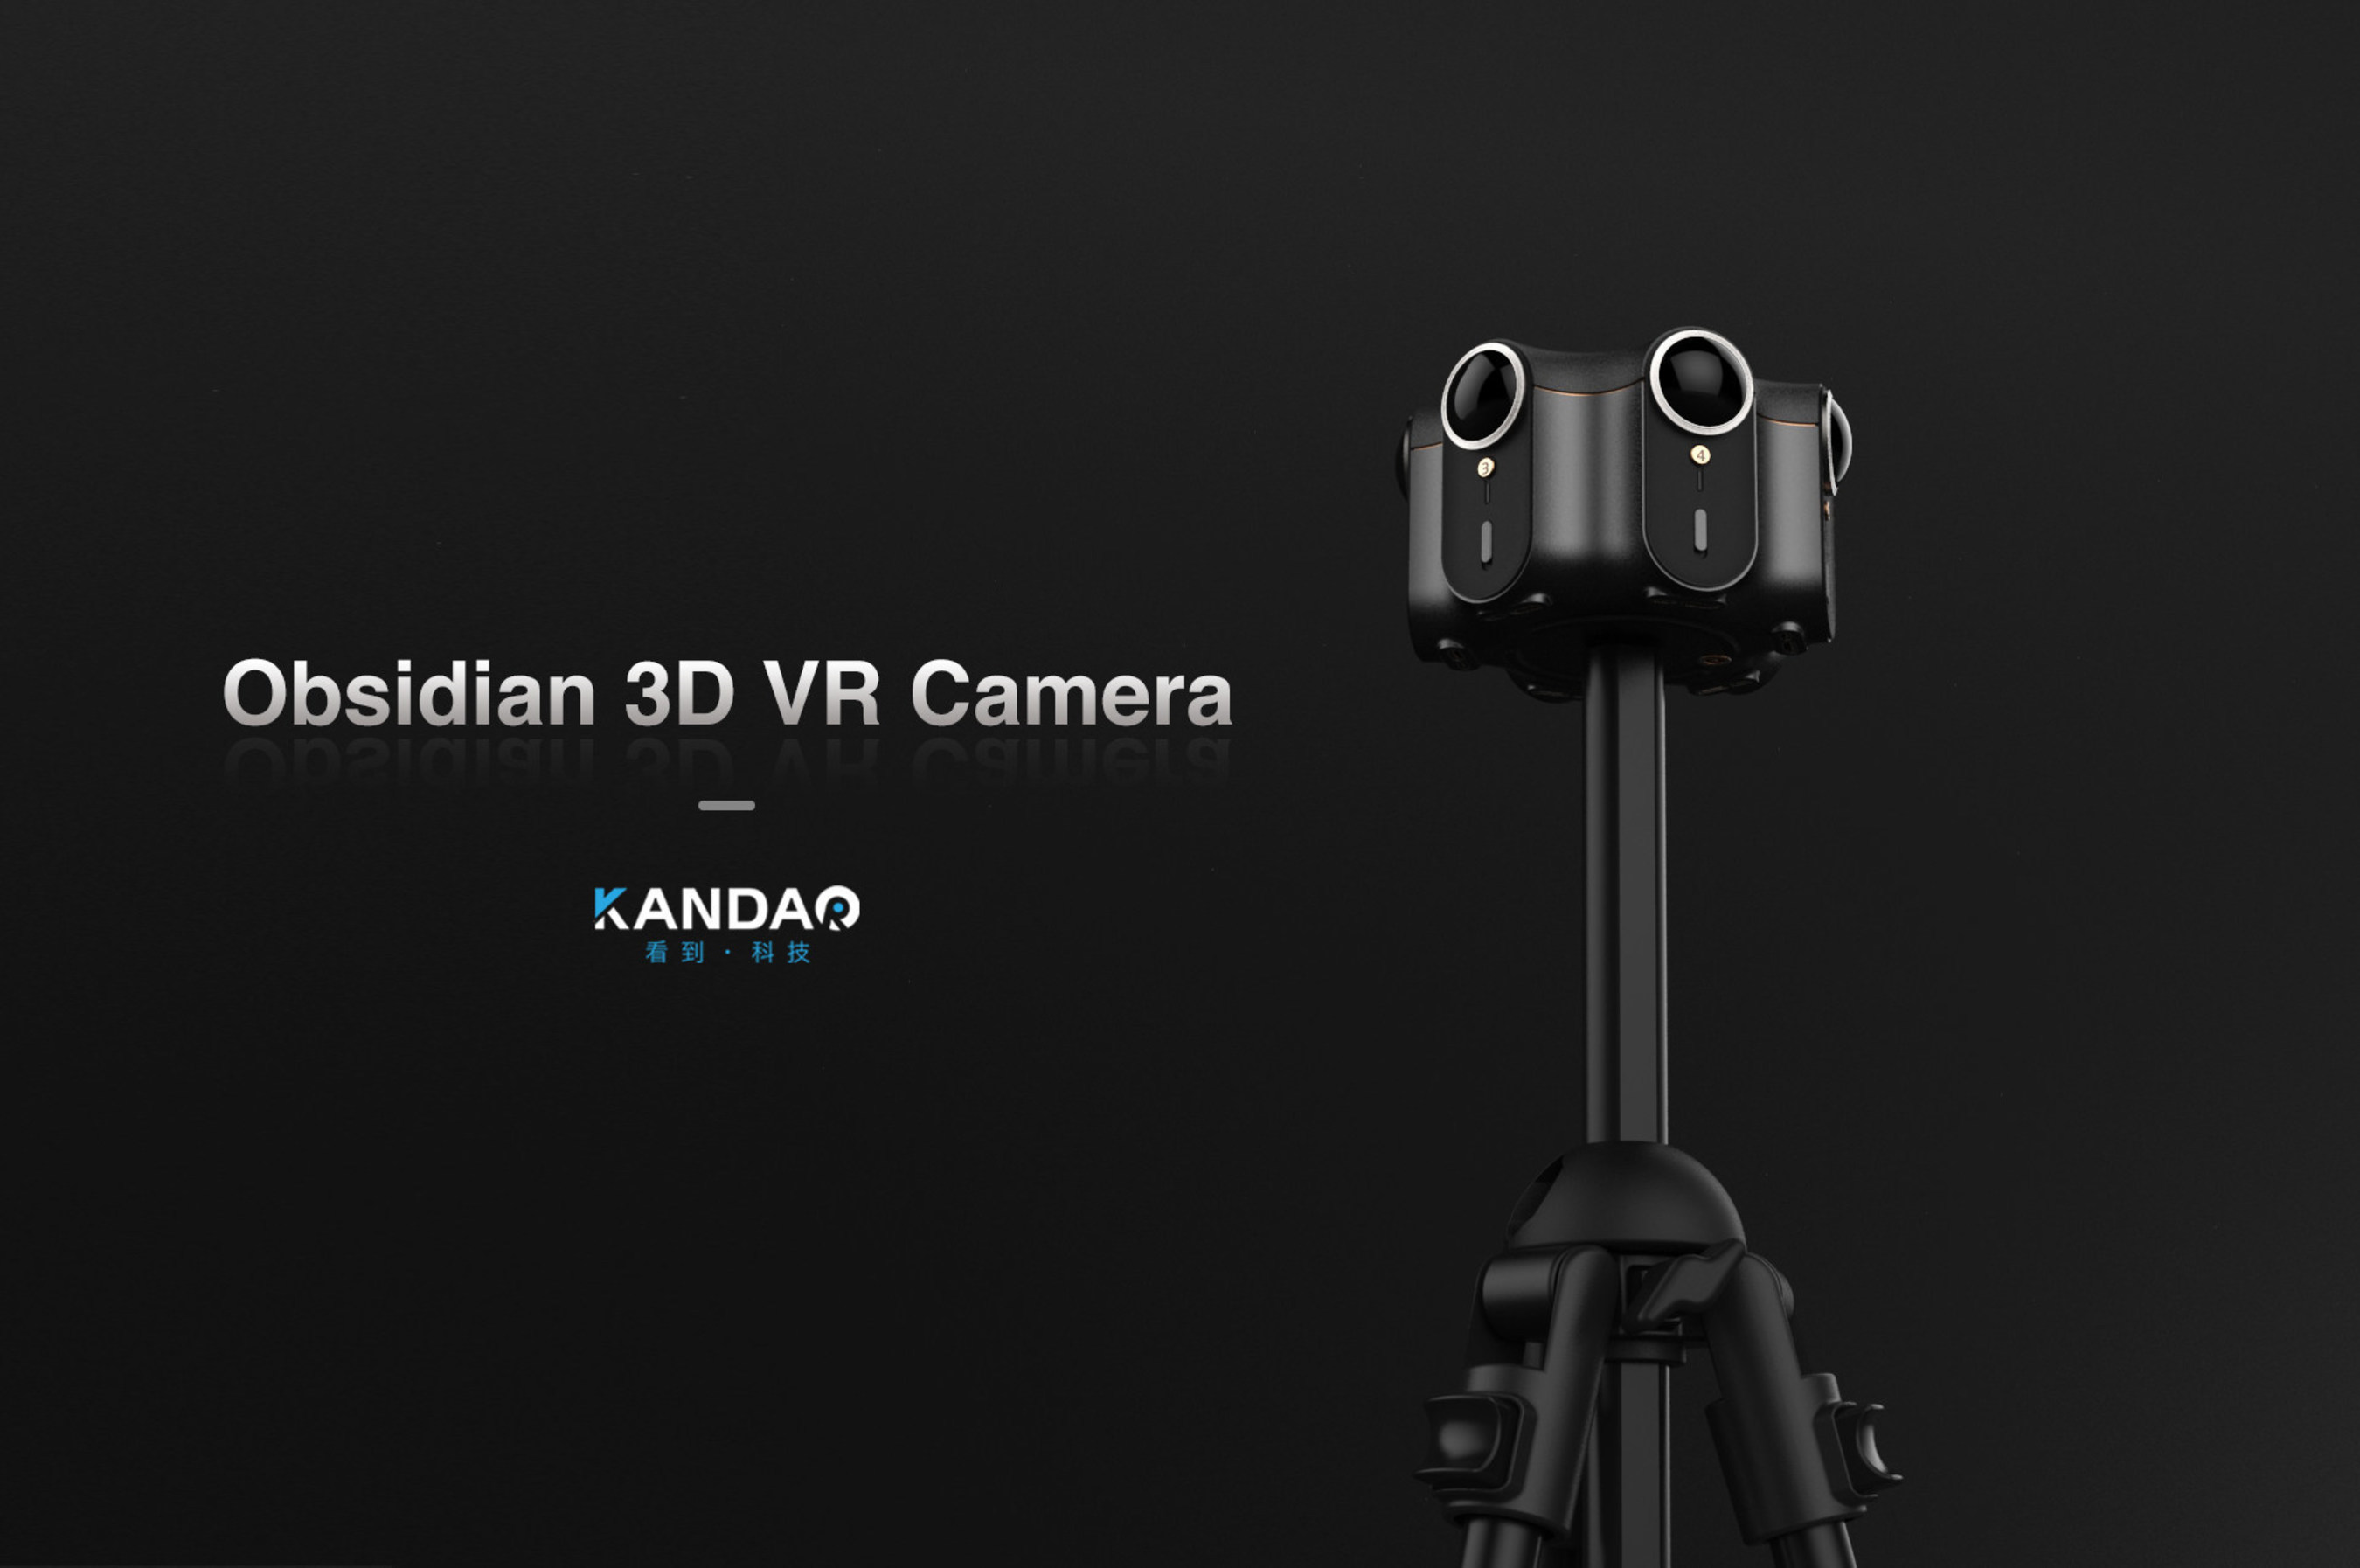 KanDao Technology's Obsidian Camera Wins CES 2017 Best of Innovation Award